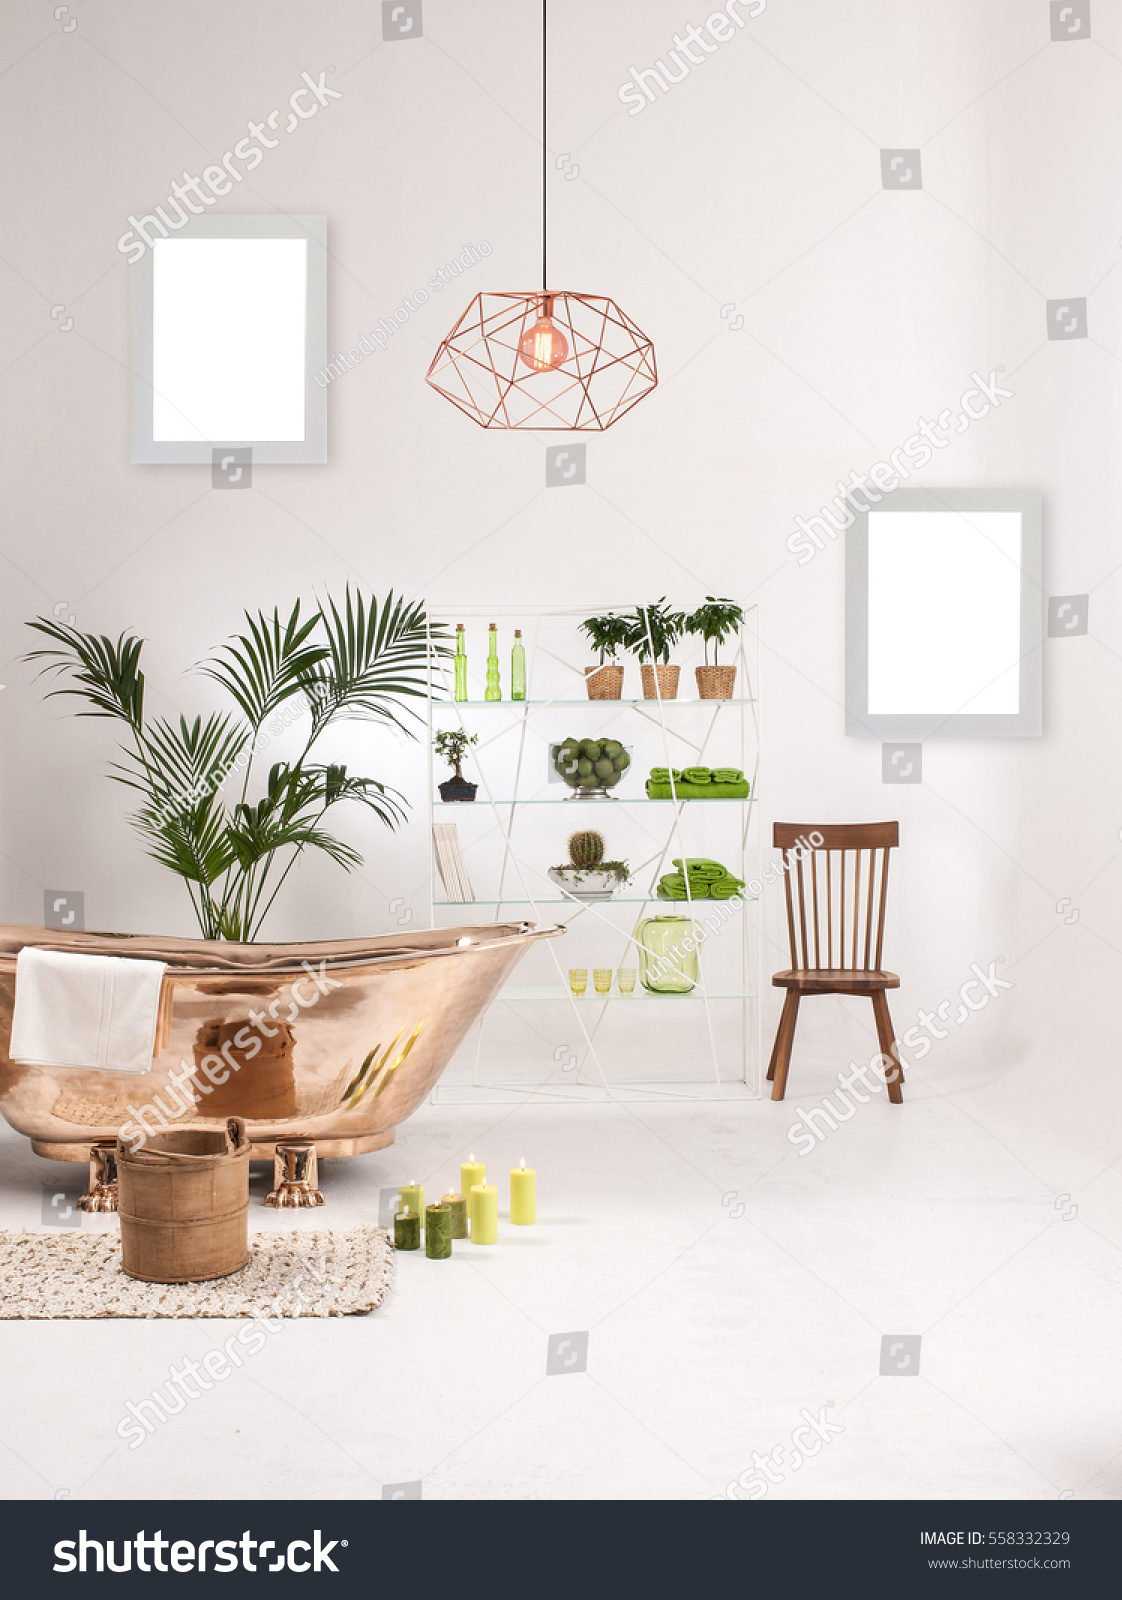 Natural Wood Furniture White Wall Decor Stock Photo & Image (Royalty ...